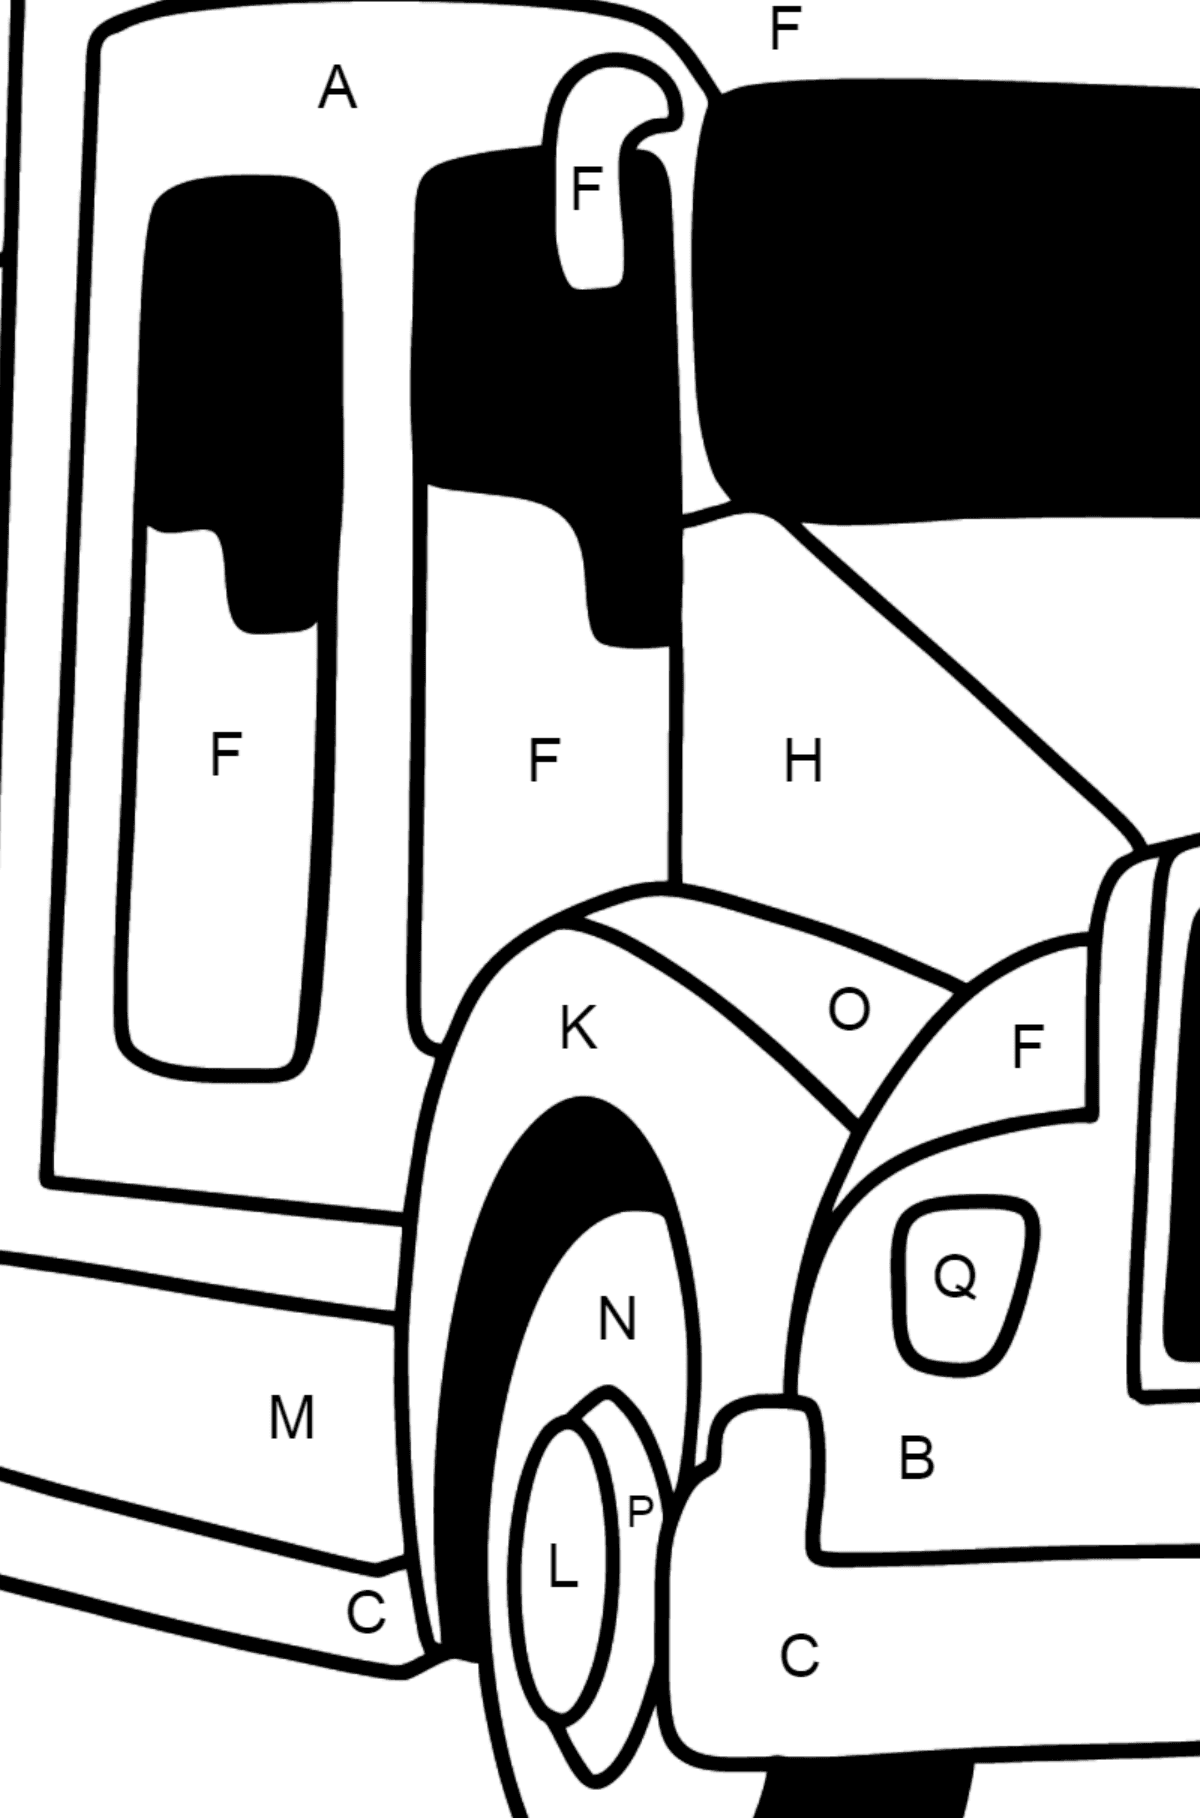 USA Fire Truck coloring page - Coloring by Letters for Kids